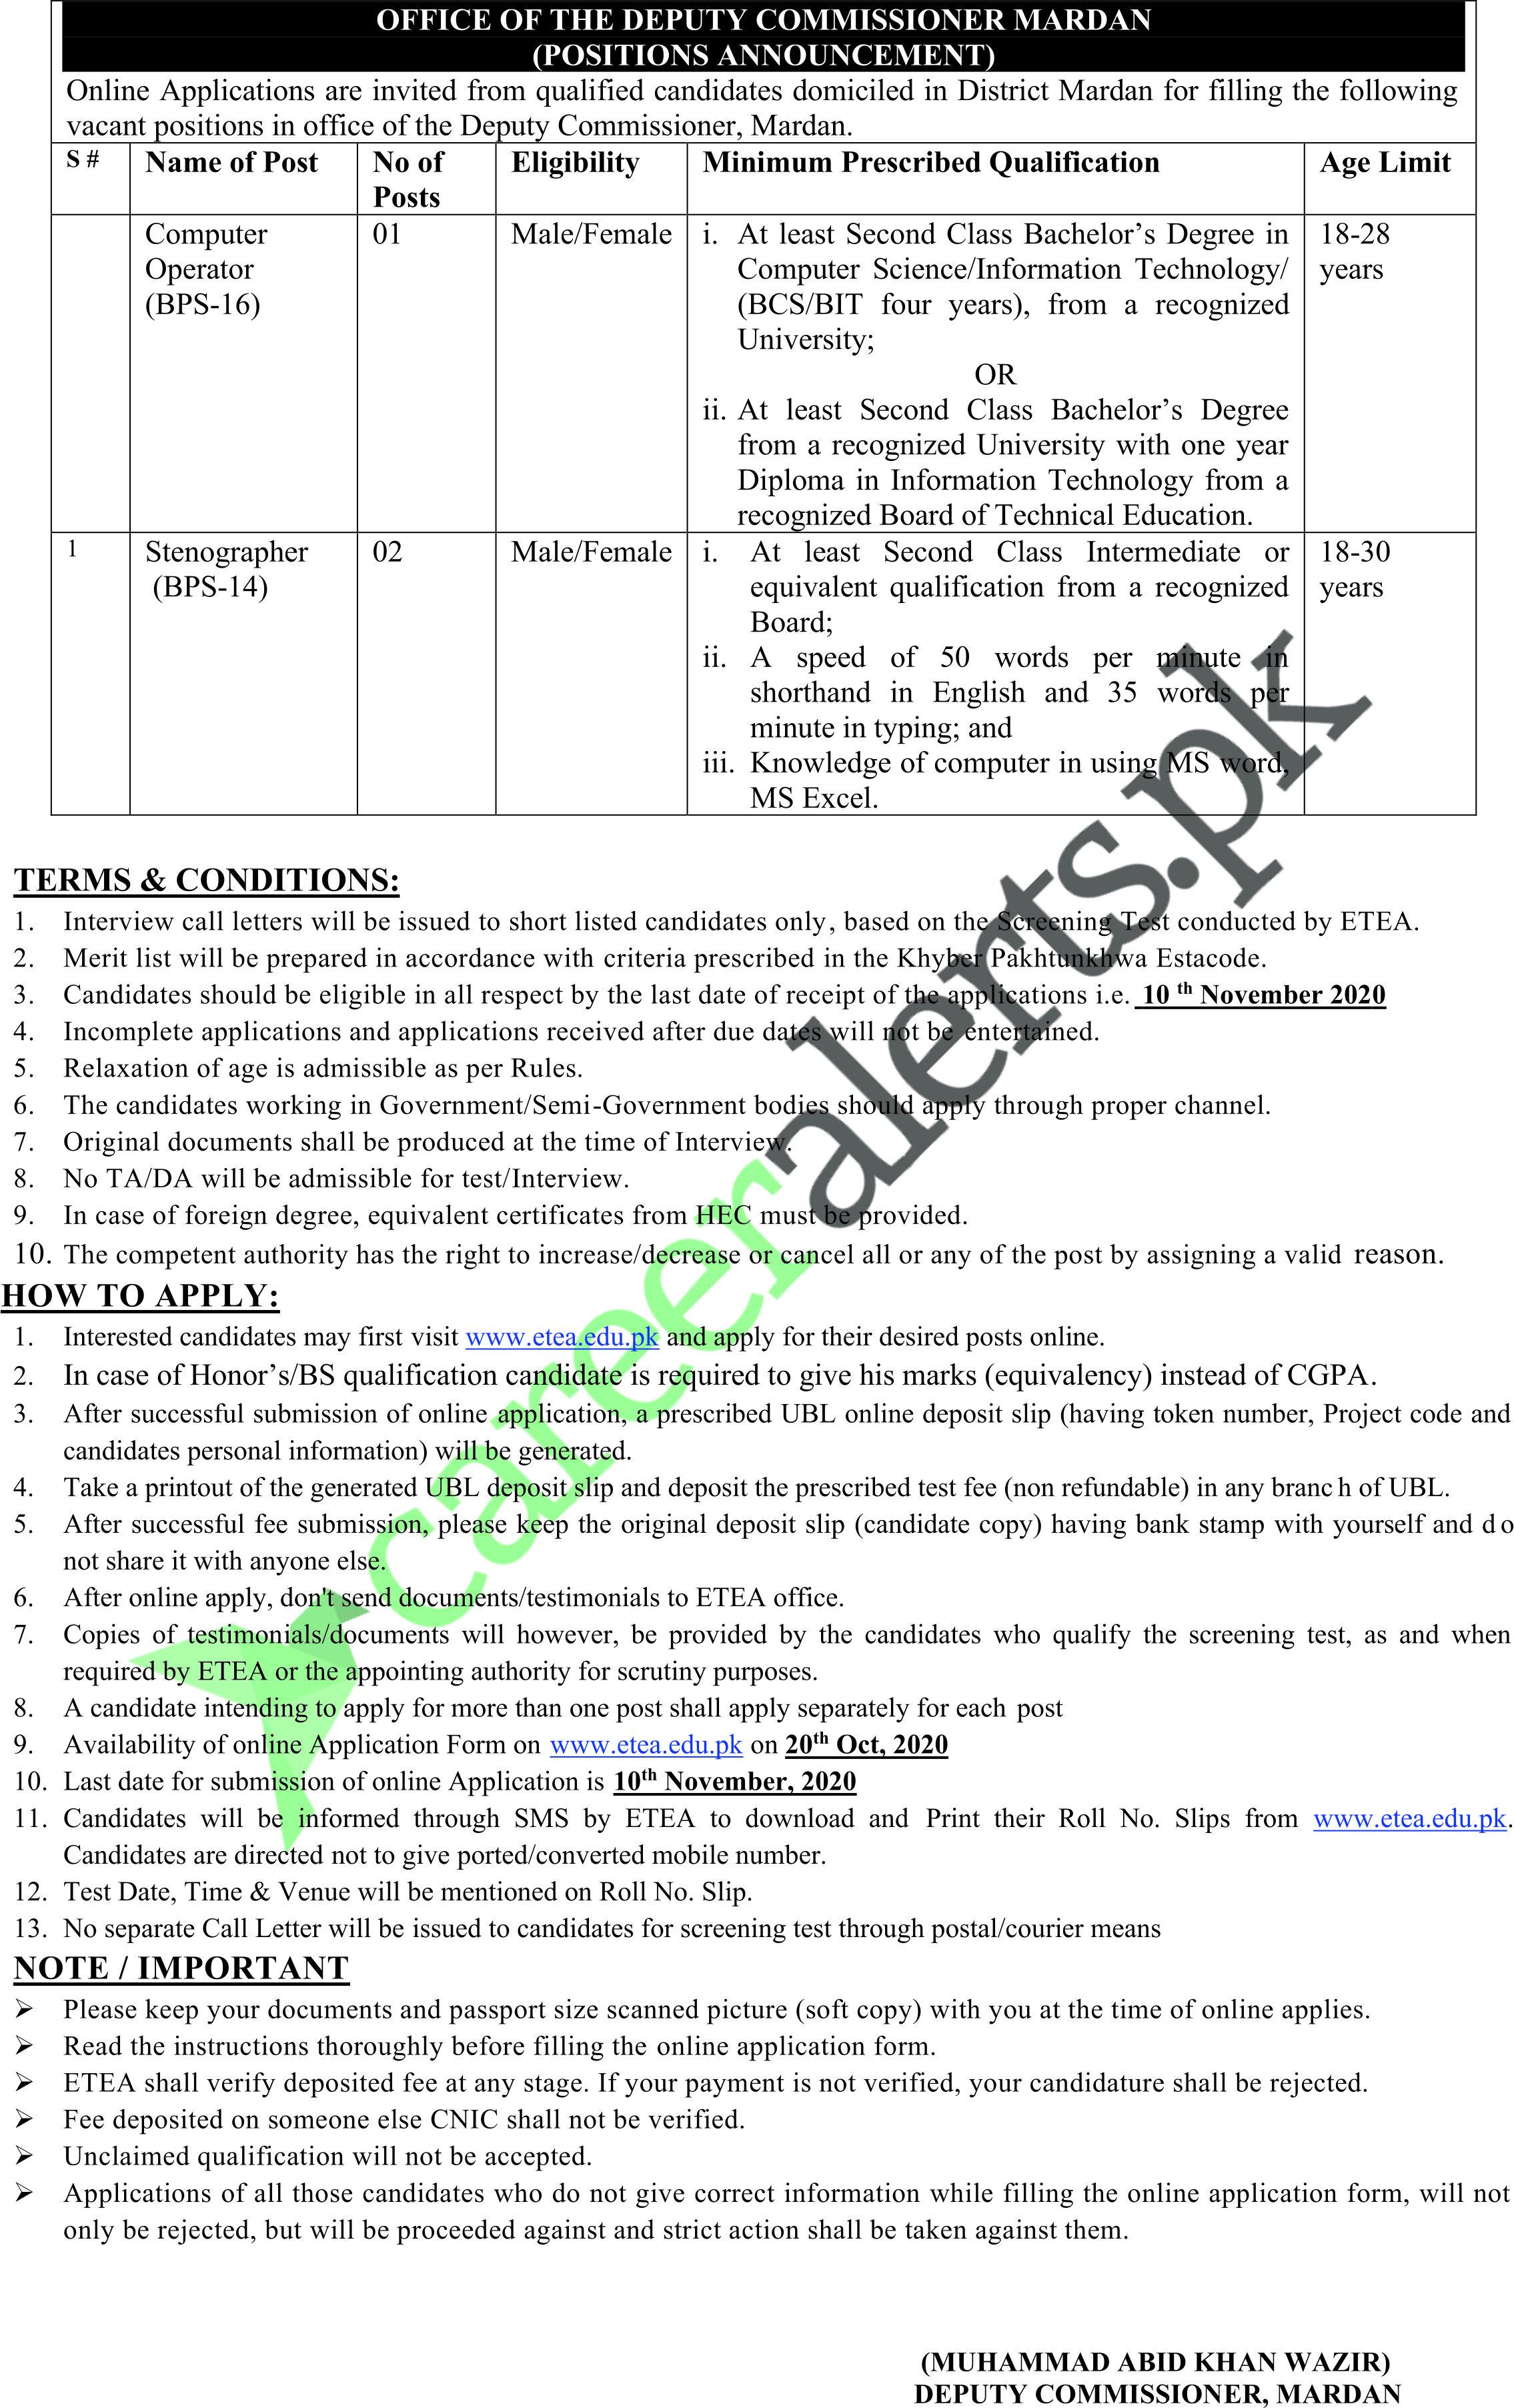 Latest Jobs Deputy Commissioner Mardan November 2020